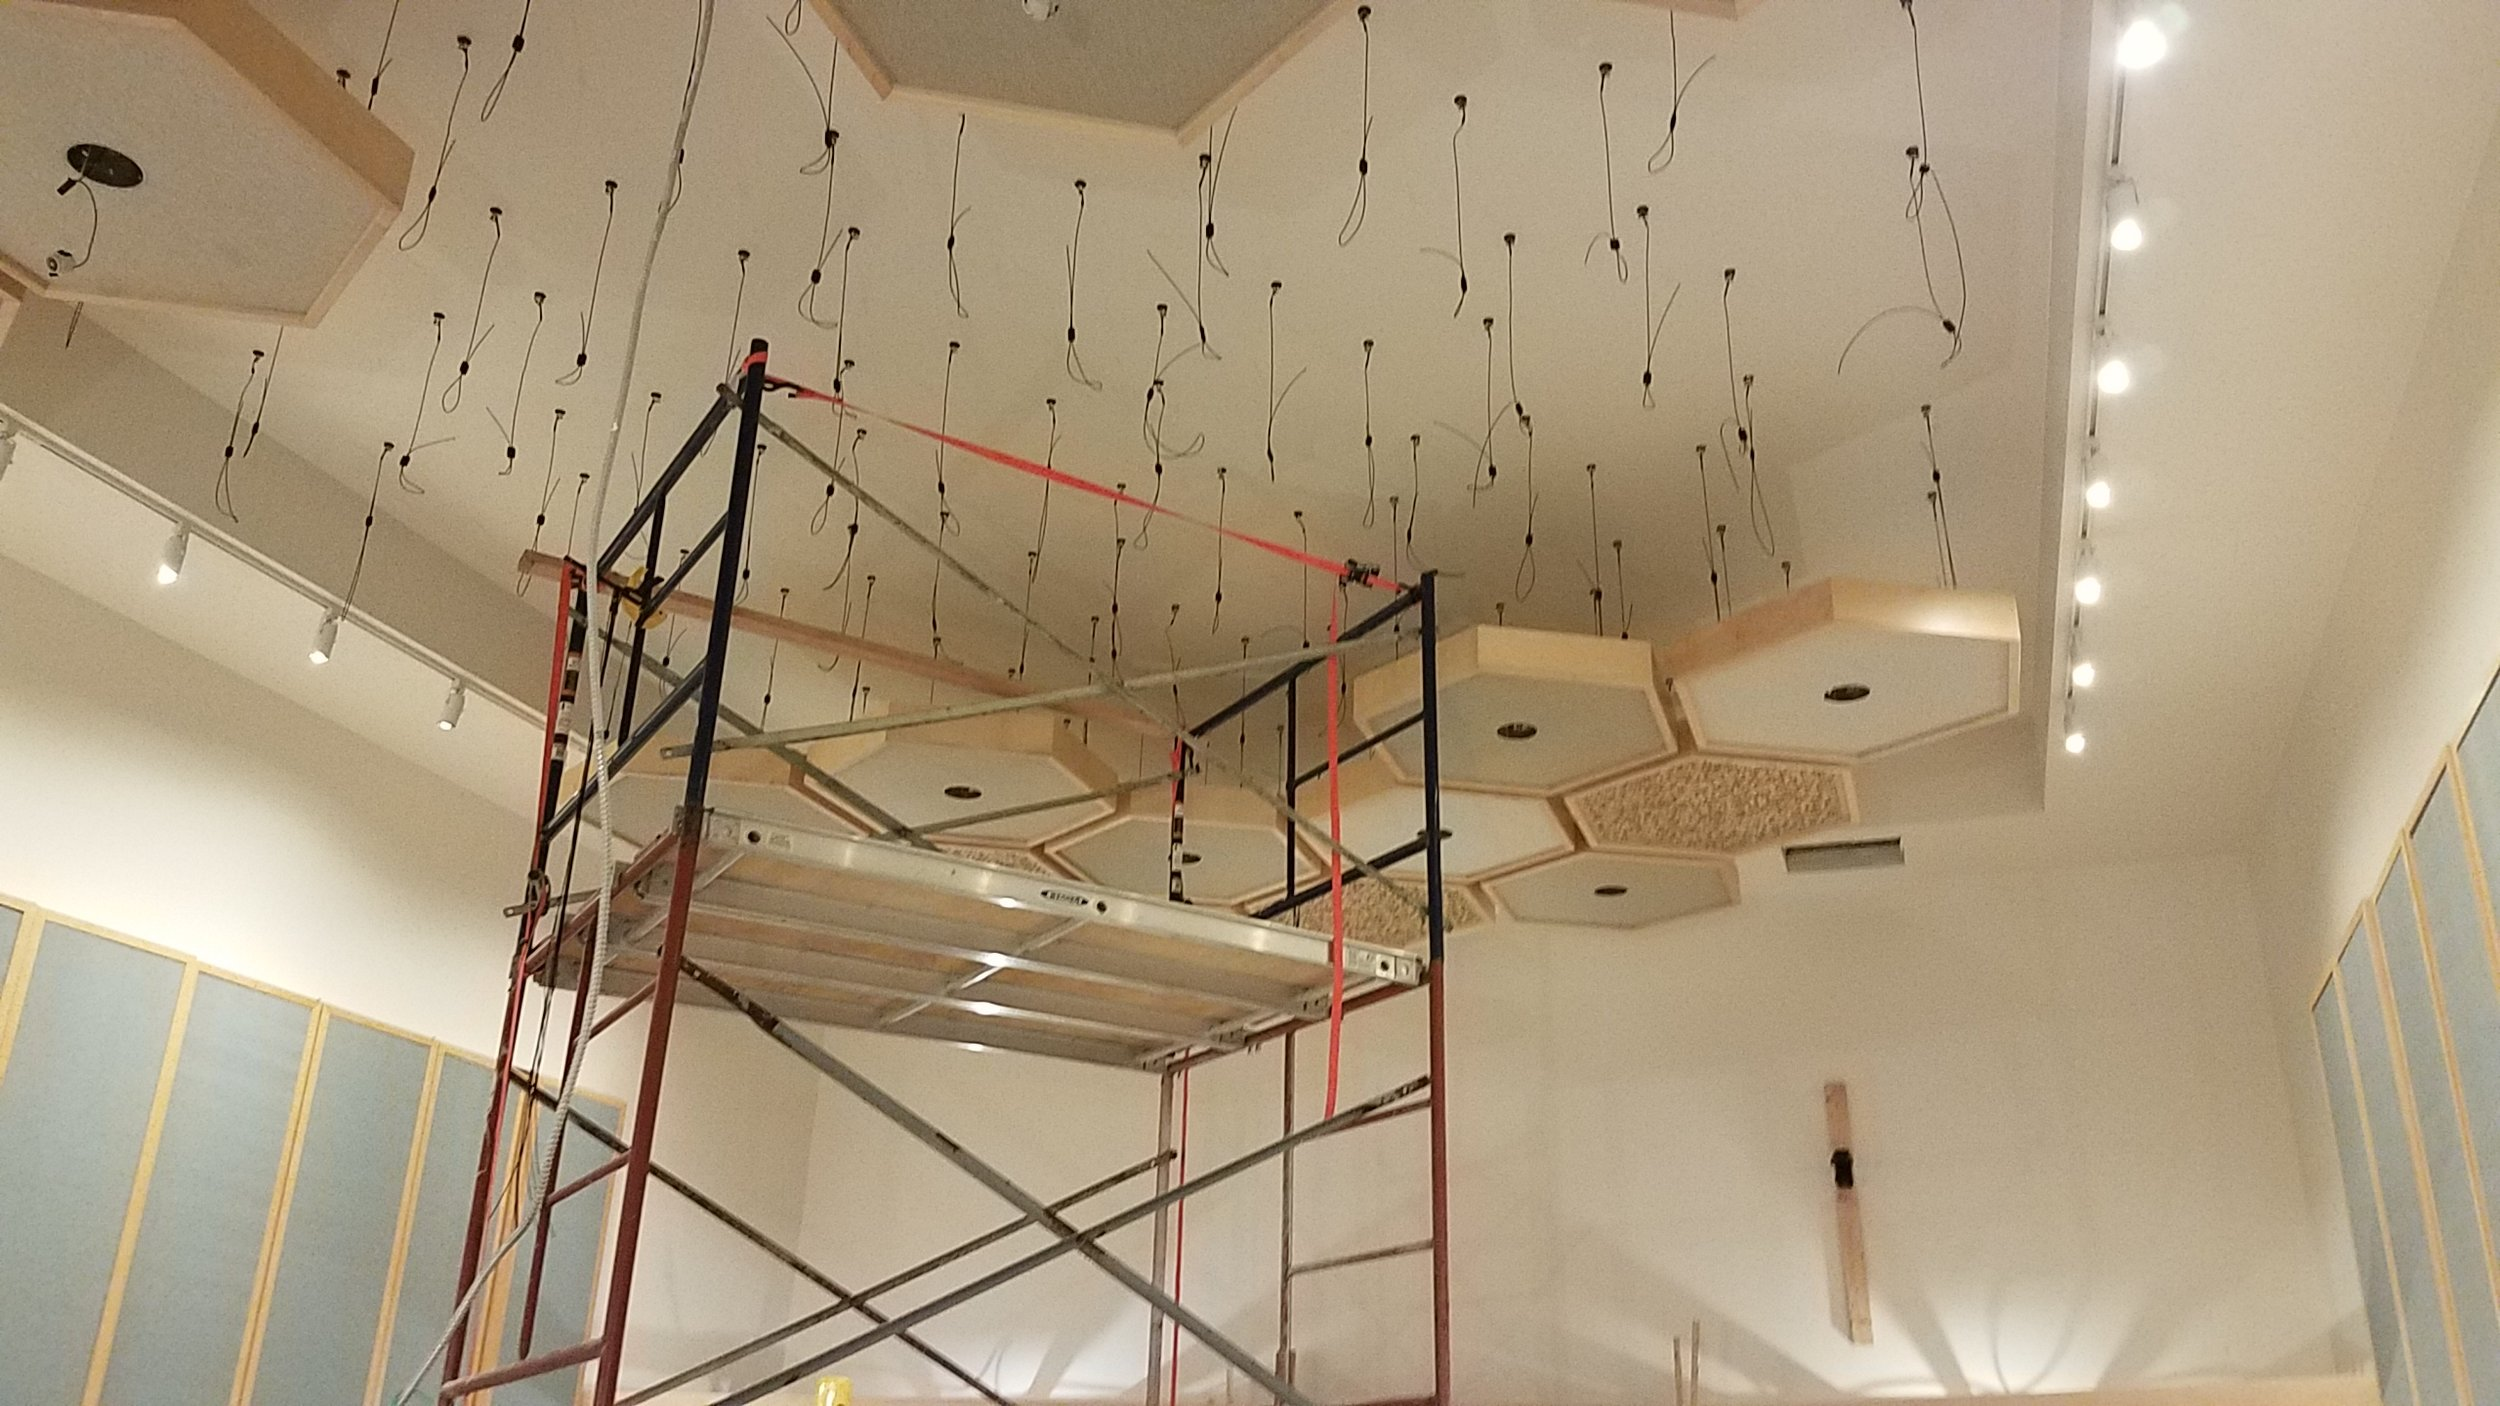 The marks were then transferred to the ceiling with a laser and screws with eyelets were installed in those locations. Then one by one the hexagon shaped clouds were hoisted and hung.